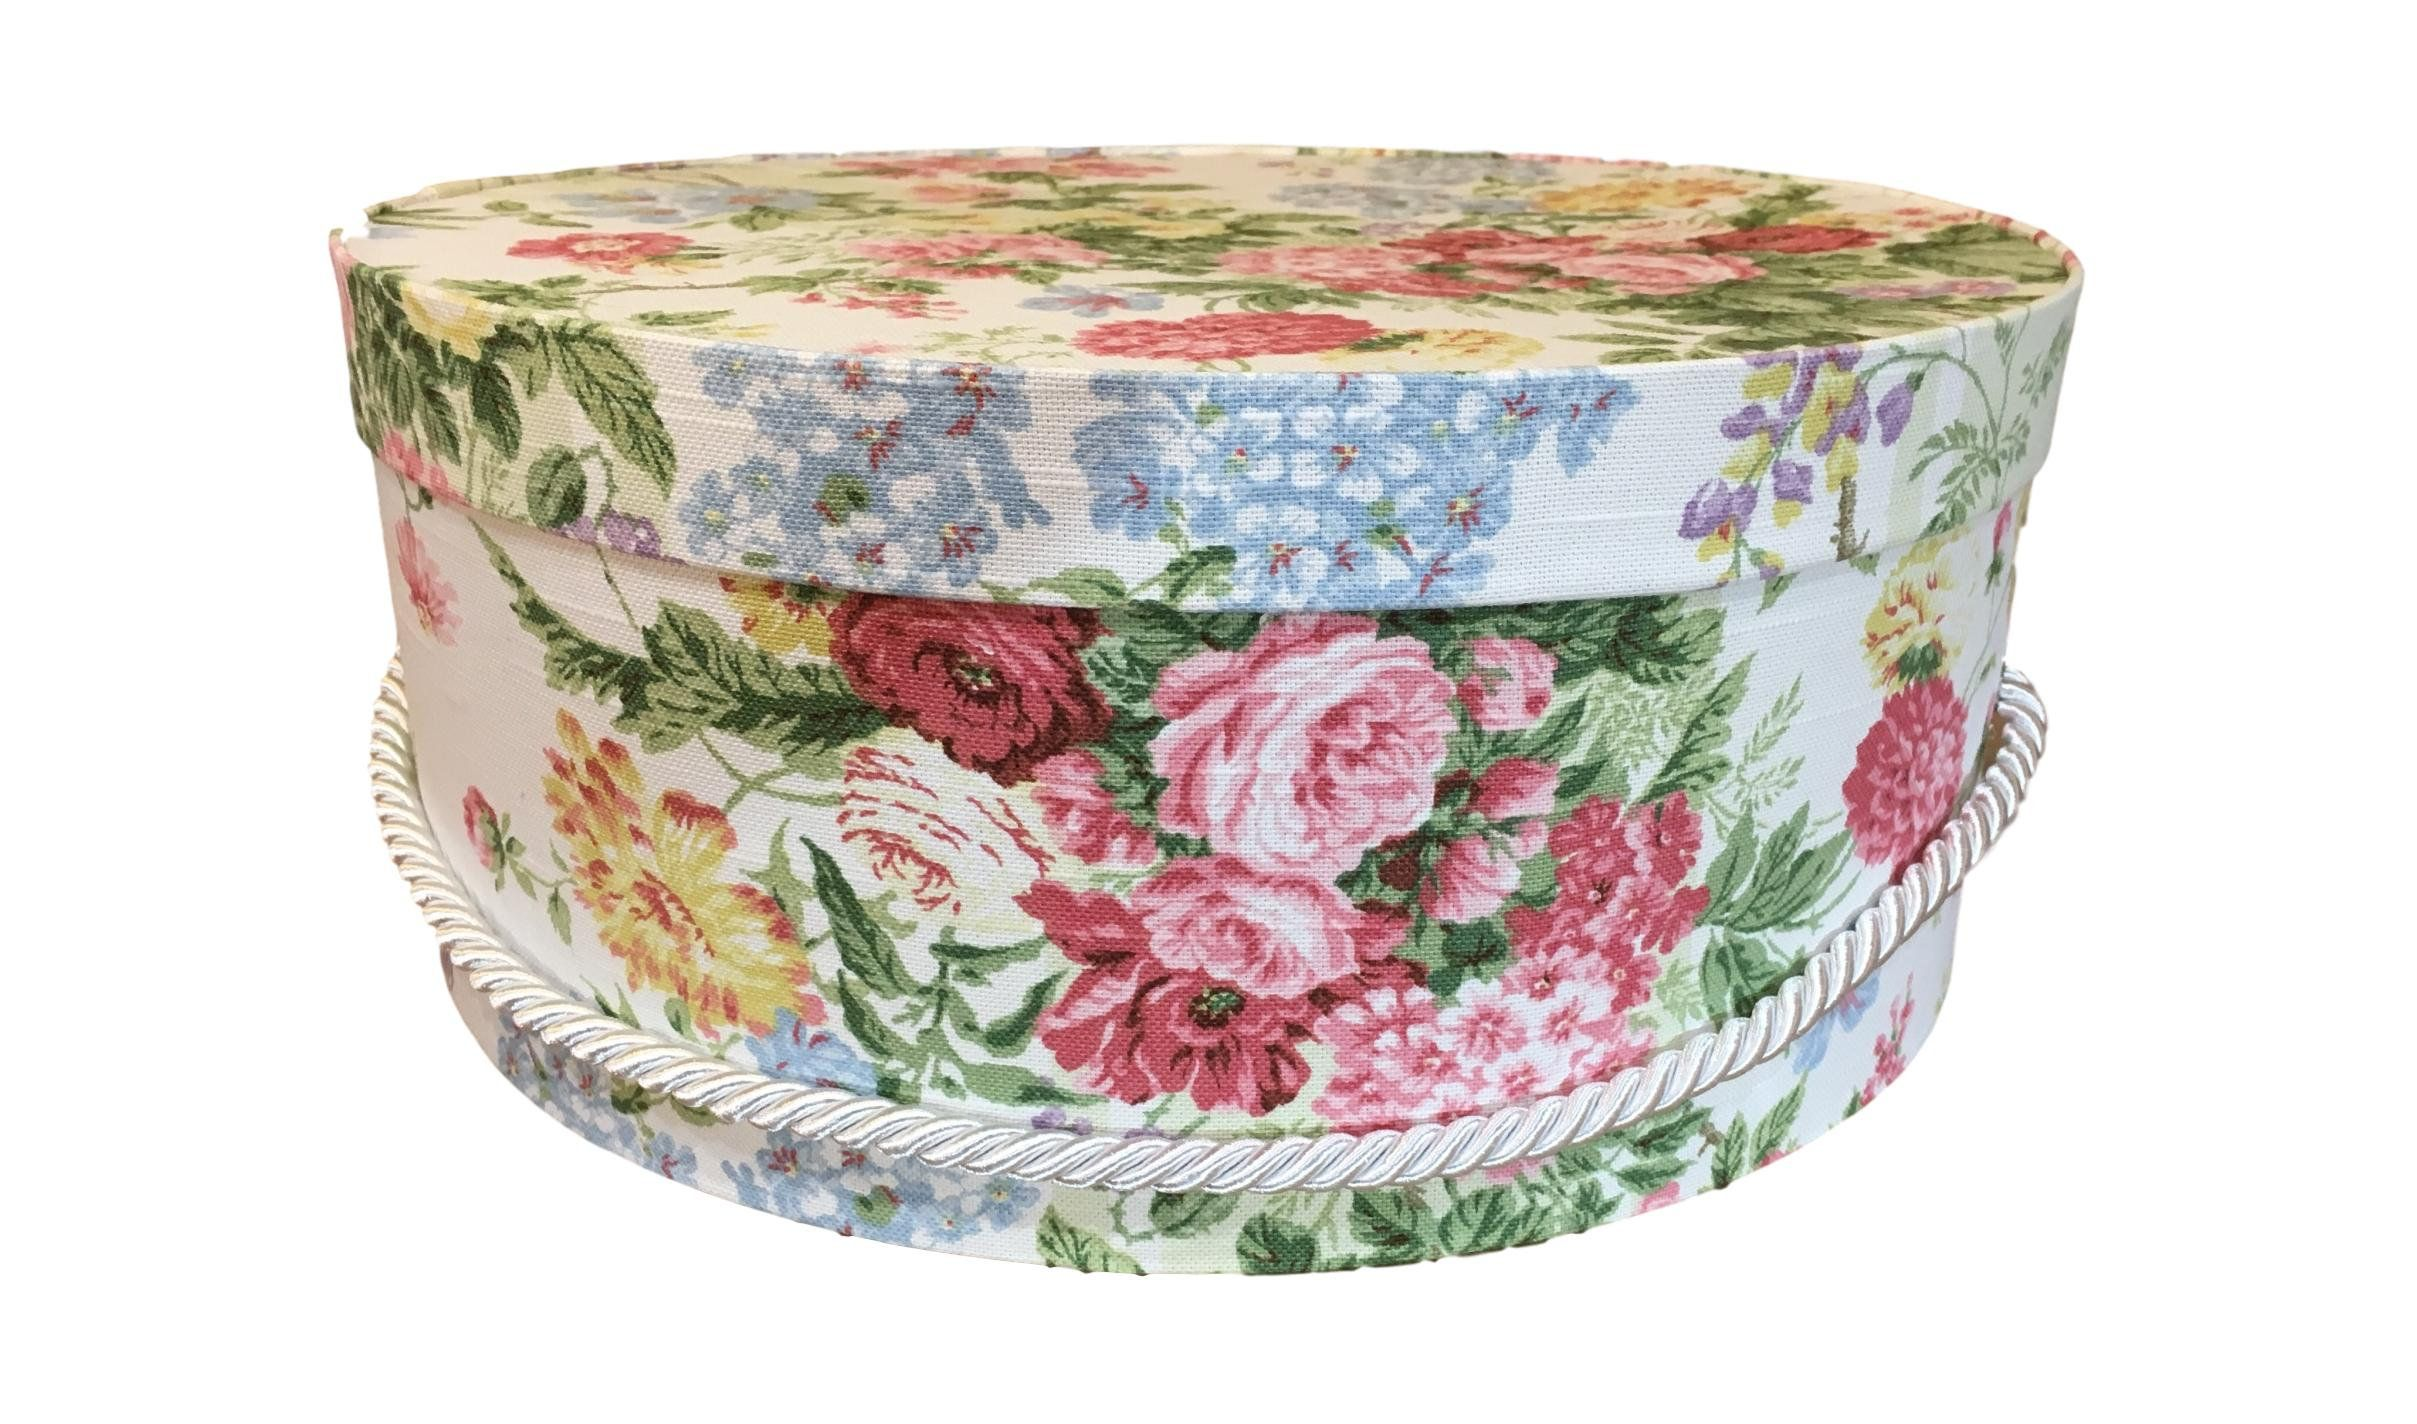 Large Hat Box In Spring Floral Colors Large Decorative Fabric